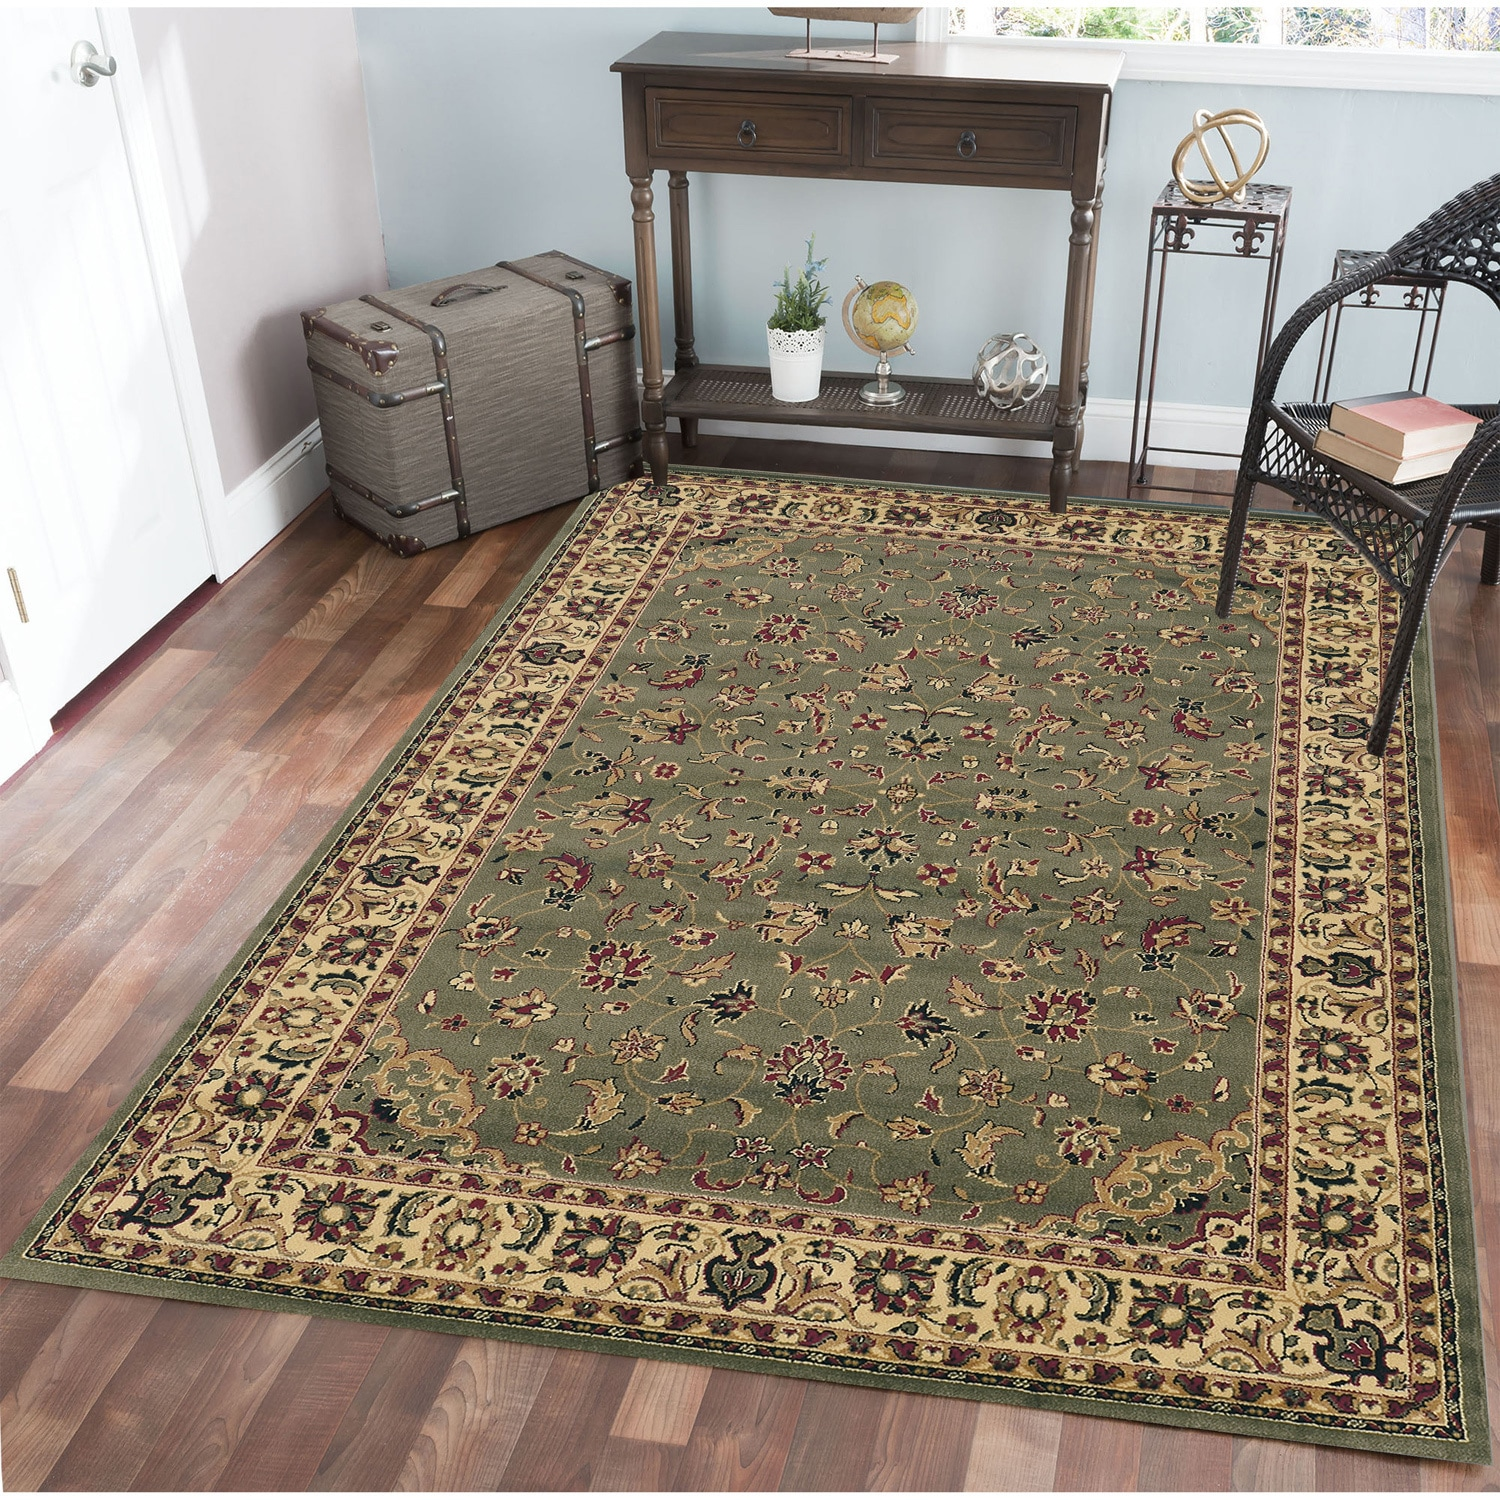 7 x 10 Rugs & Area Rugs For Less